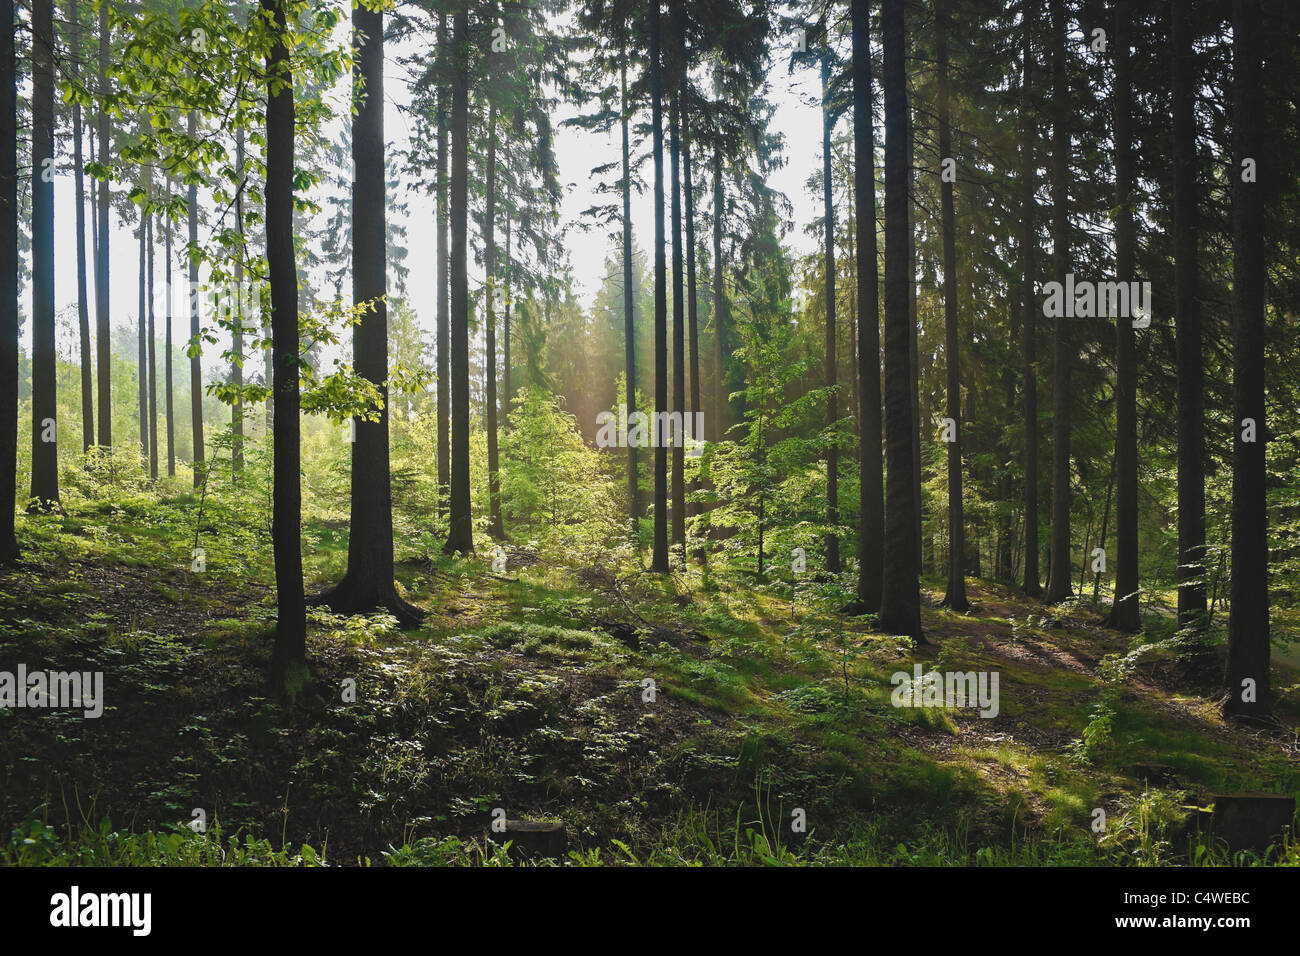 Mischwald im Sommer   Mixed forest in summer - Stock Image